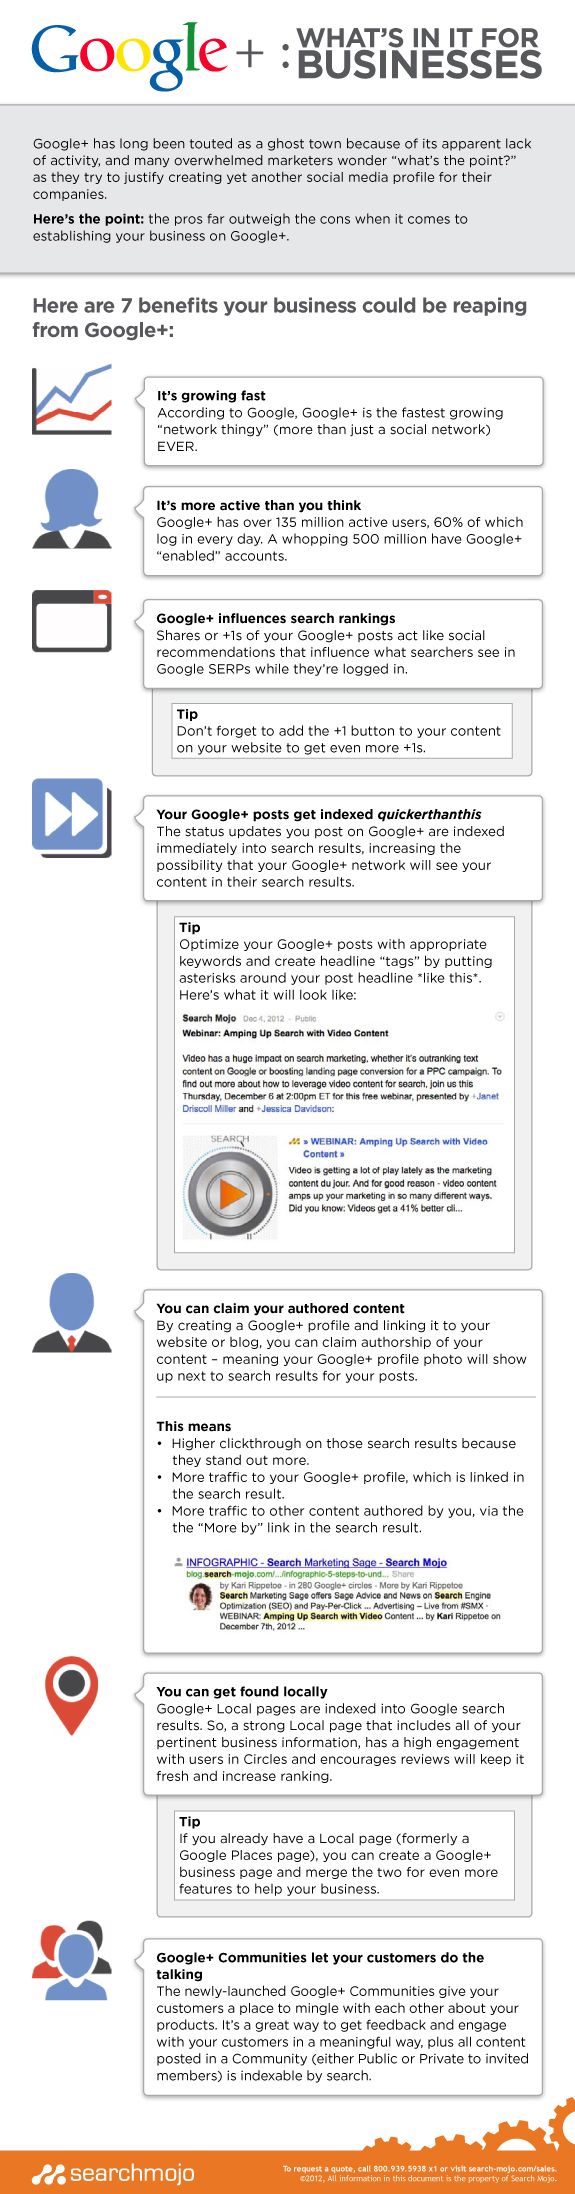 7 Key Benefits of Getting a Google Plus Page for your Company